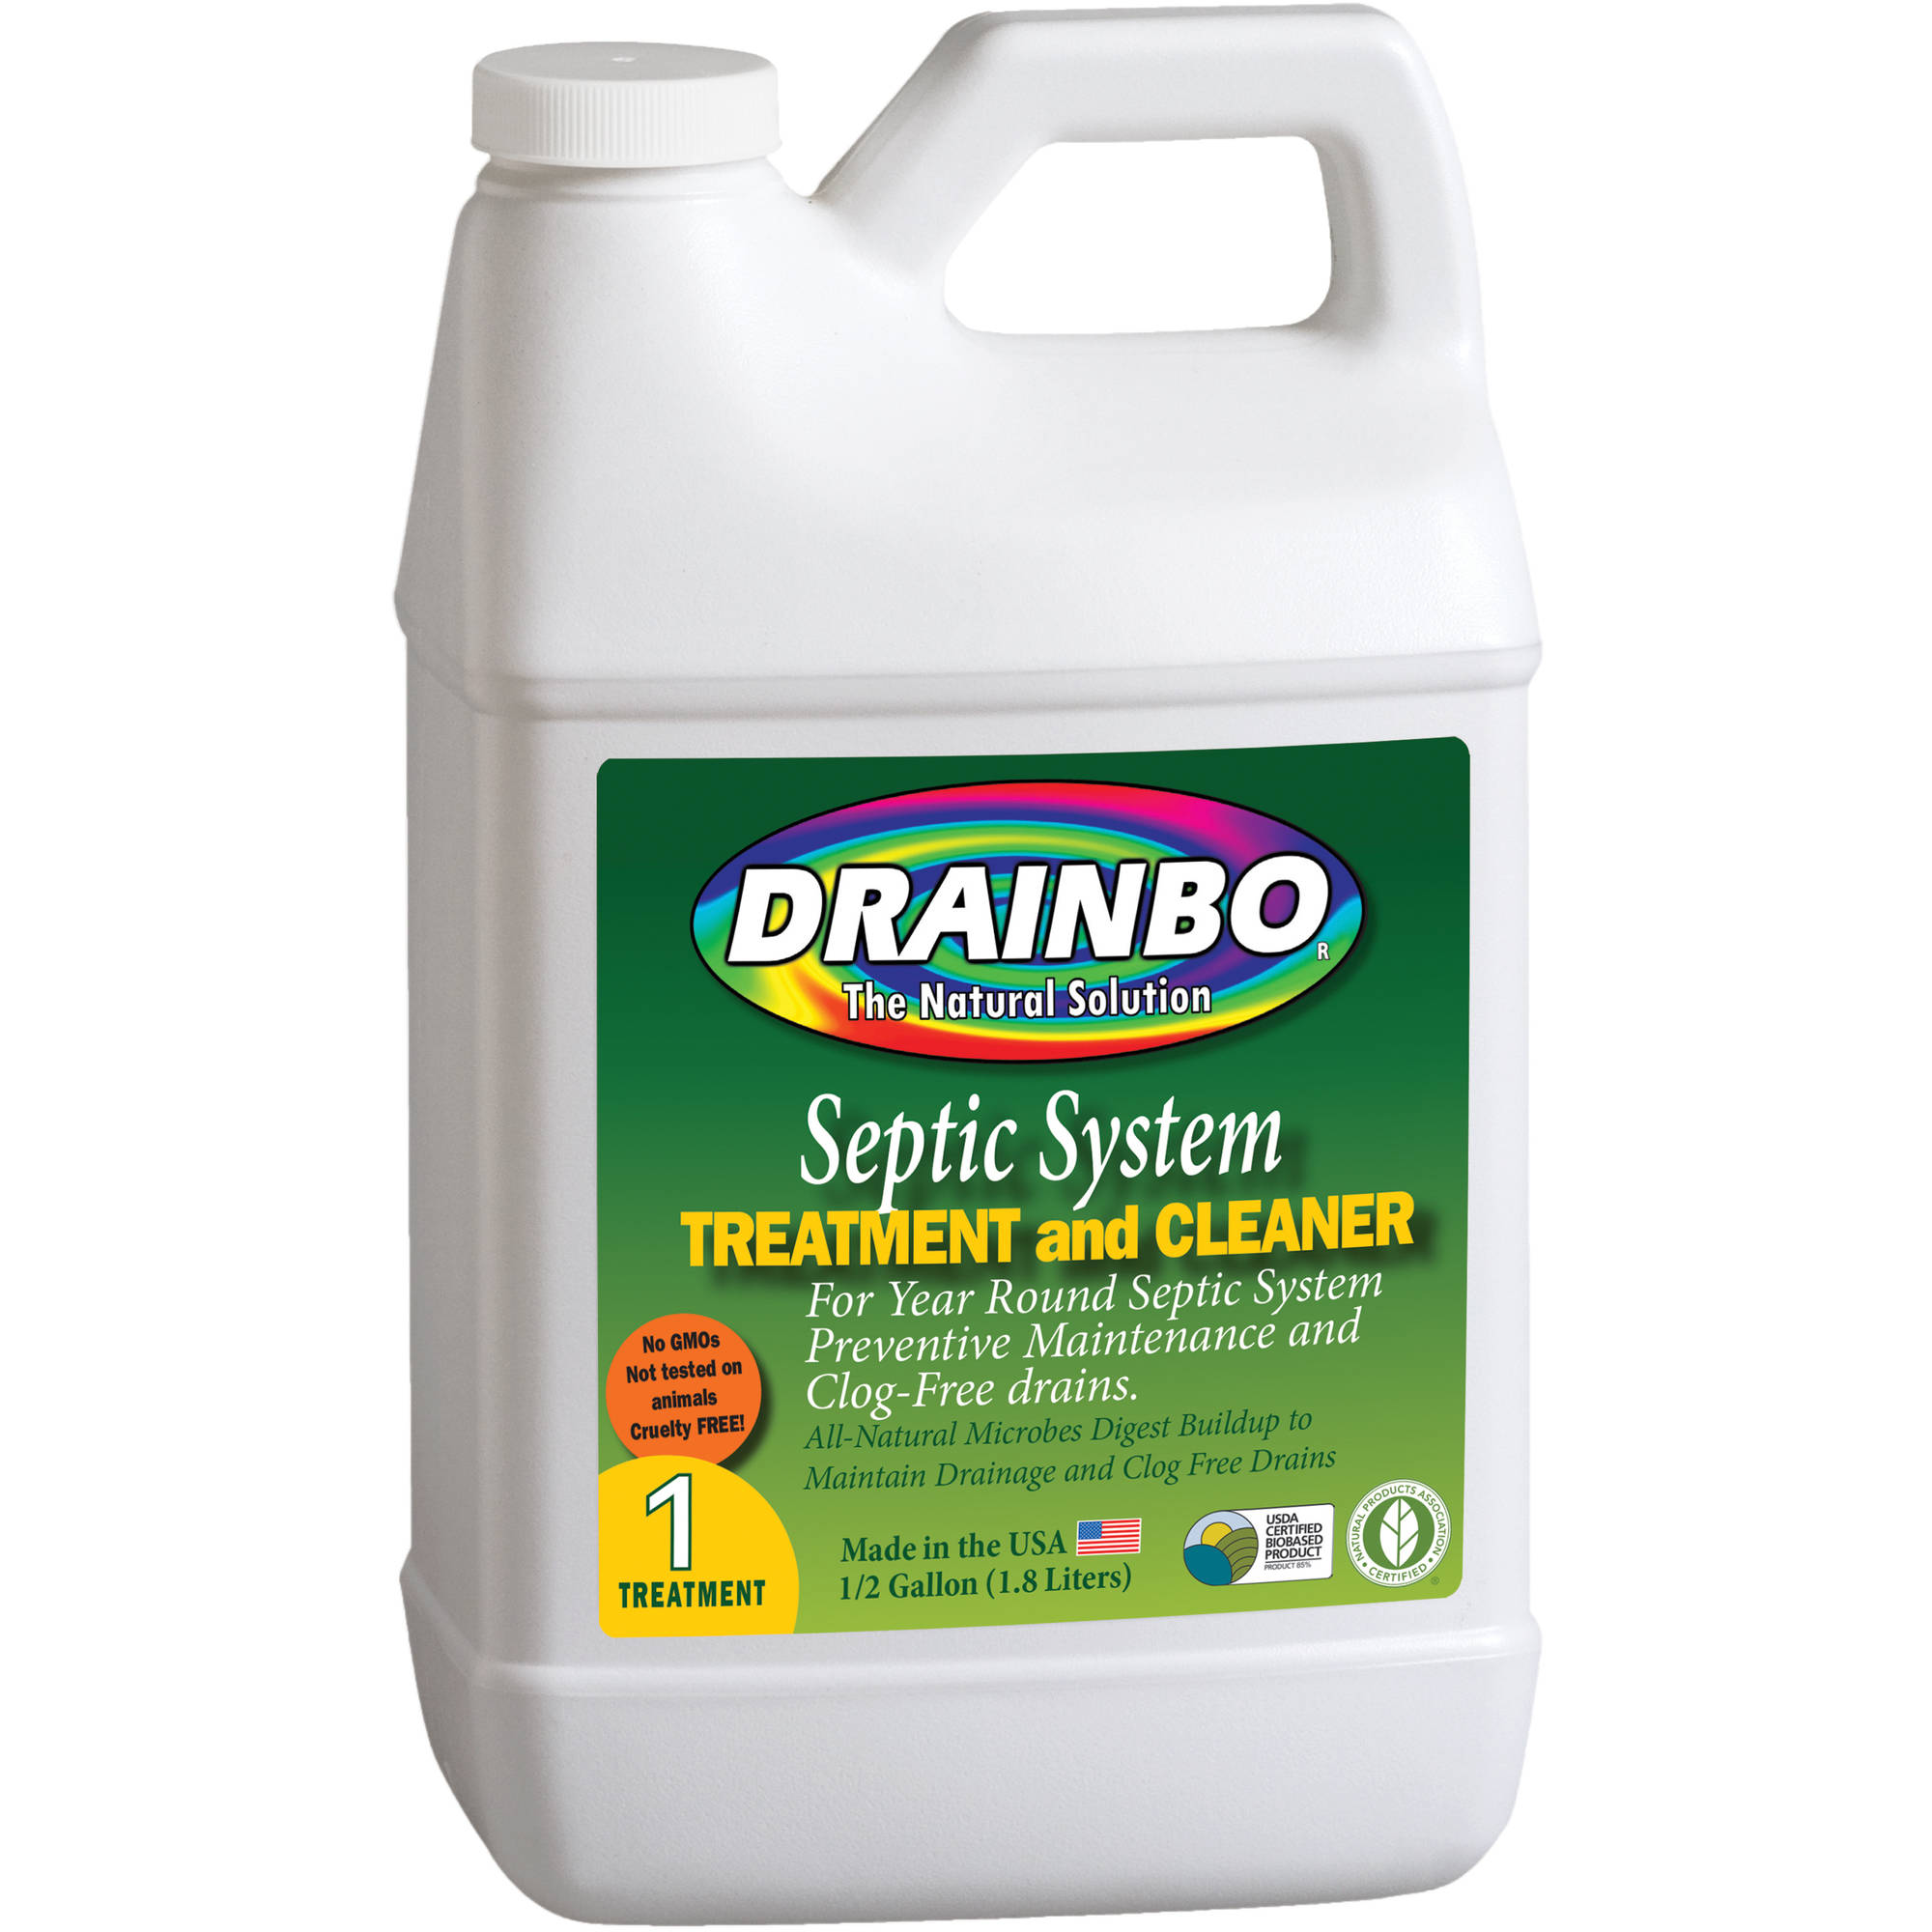 Drainbo Septic System Treatment and Cleaner, 0.5-Gallon